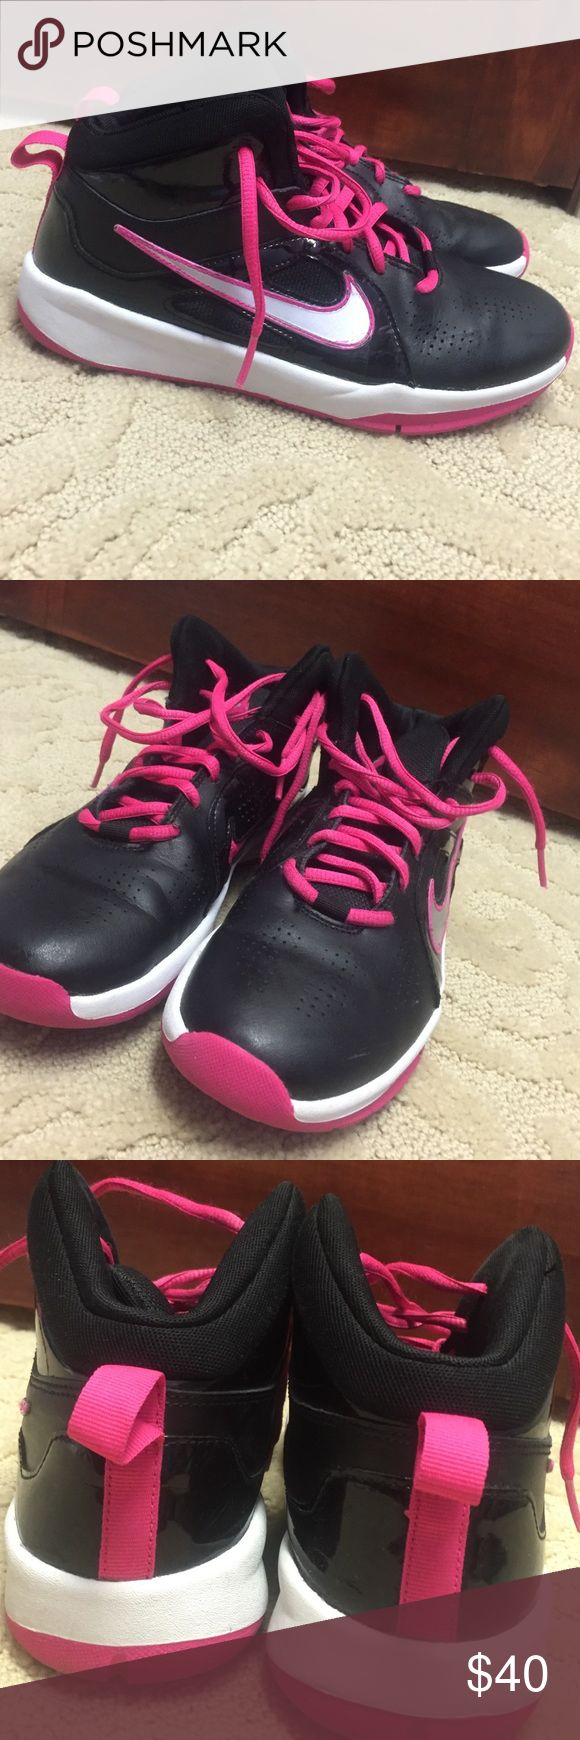 🏀Nike youth basketball shoes🏀 Pink and black nike basketball shoes!!!!! Lightly used for one basketball season! Almost flawless beside a few minor scrapes on the Nike swoosh (scratches pictured above) Nike Shoes Sneakers